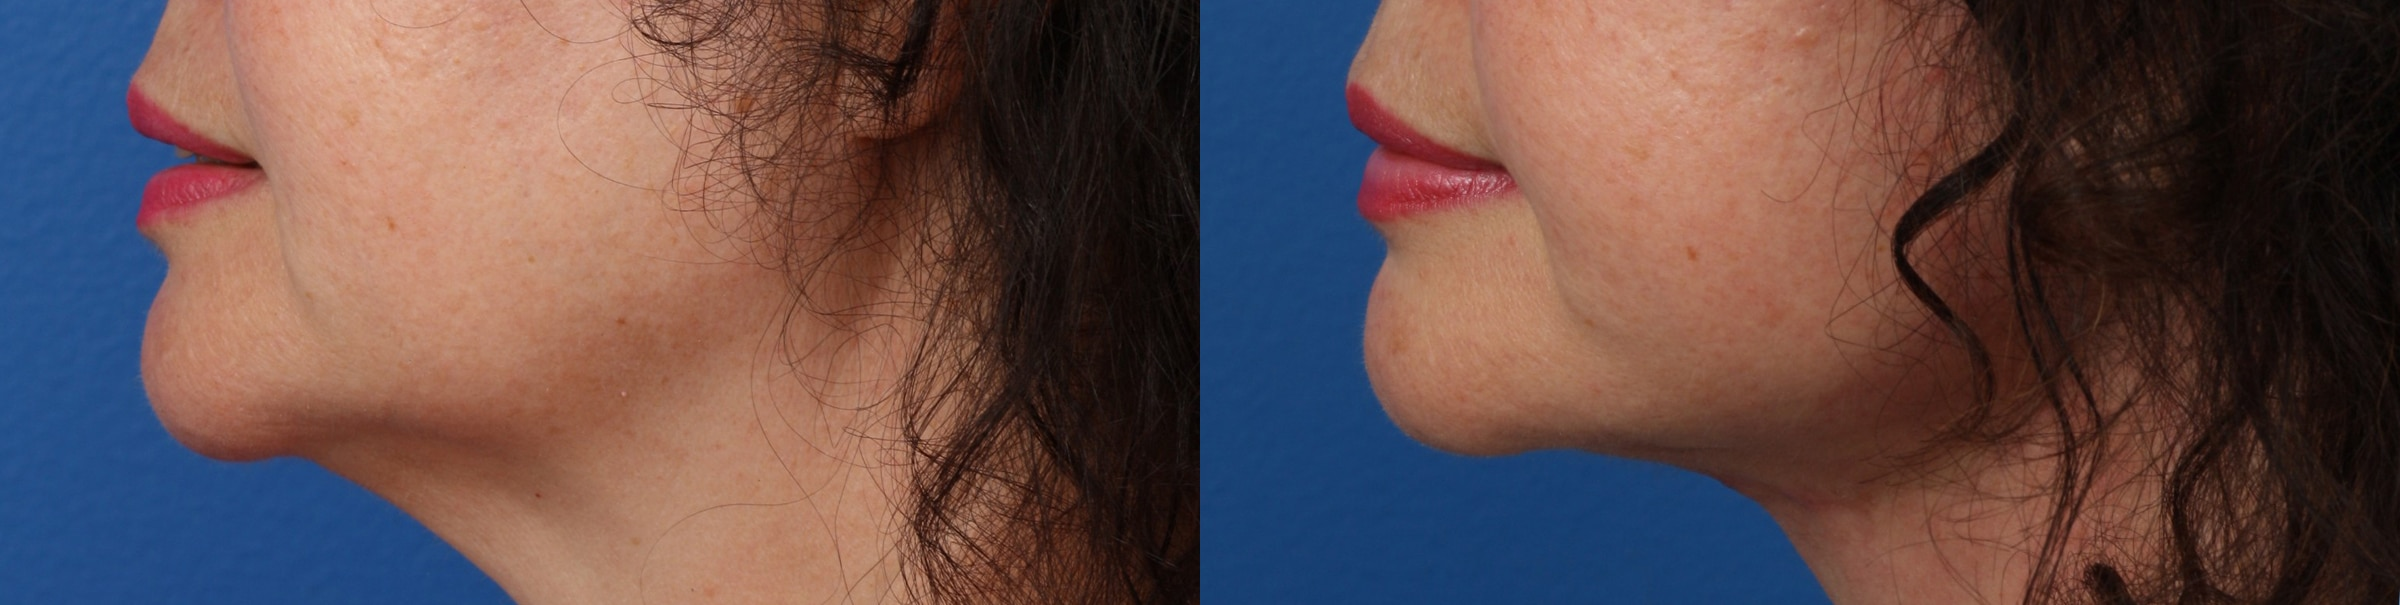 Facelift and Neck Lift to Define the Jawline by Dr. Miller